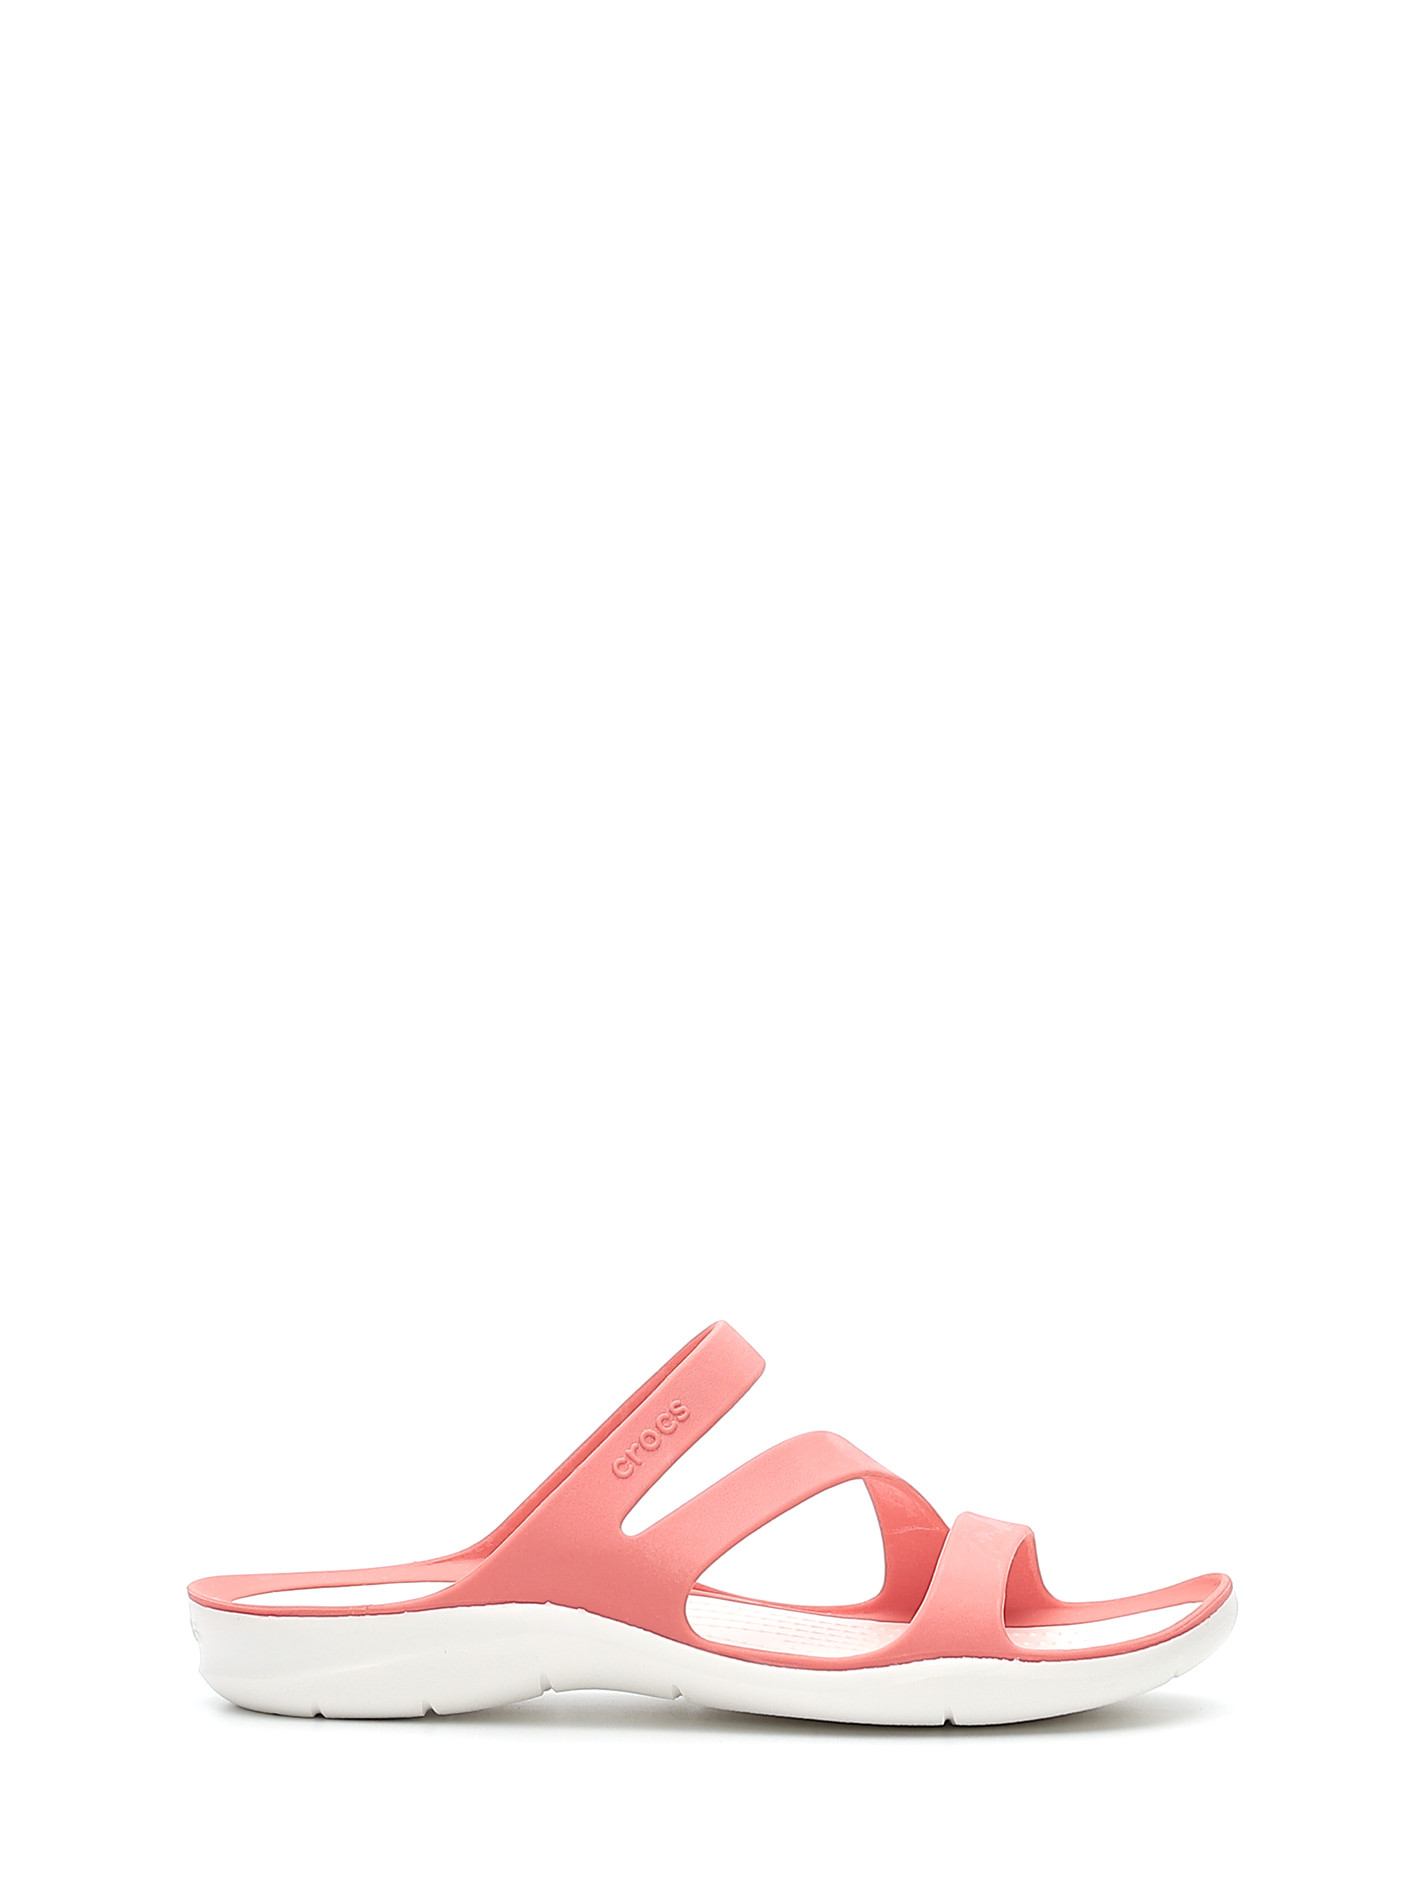 Swiftwater sandal - Corail